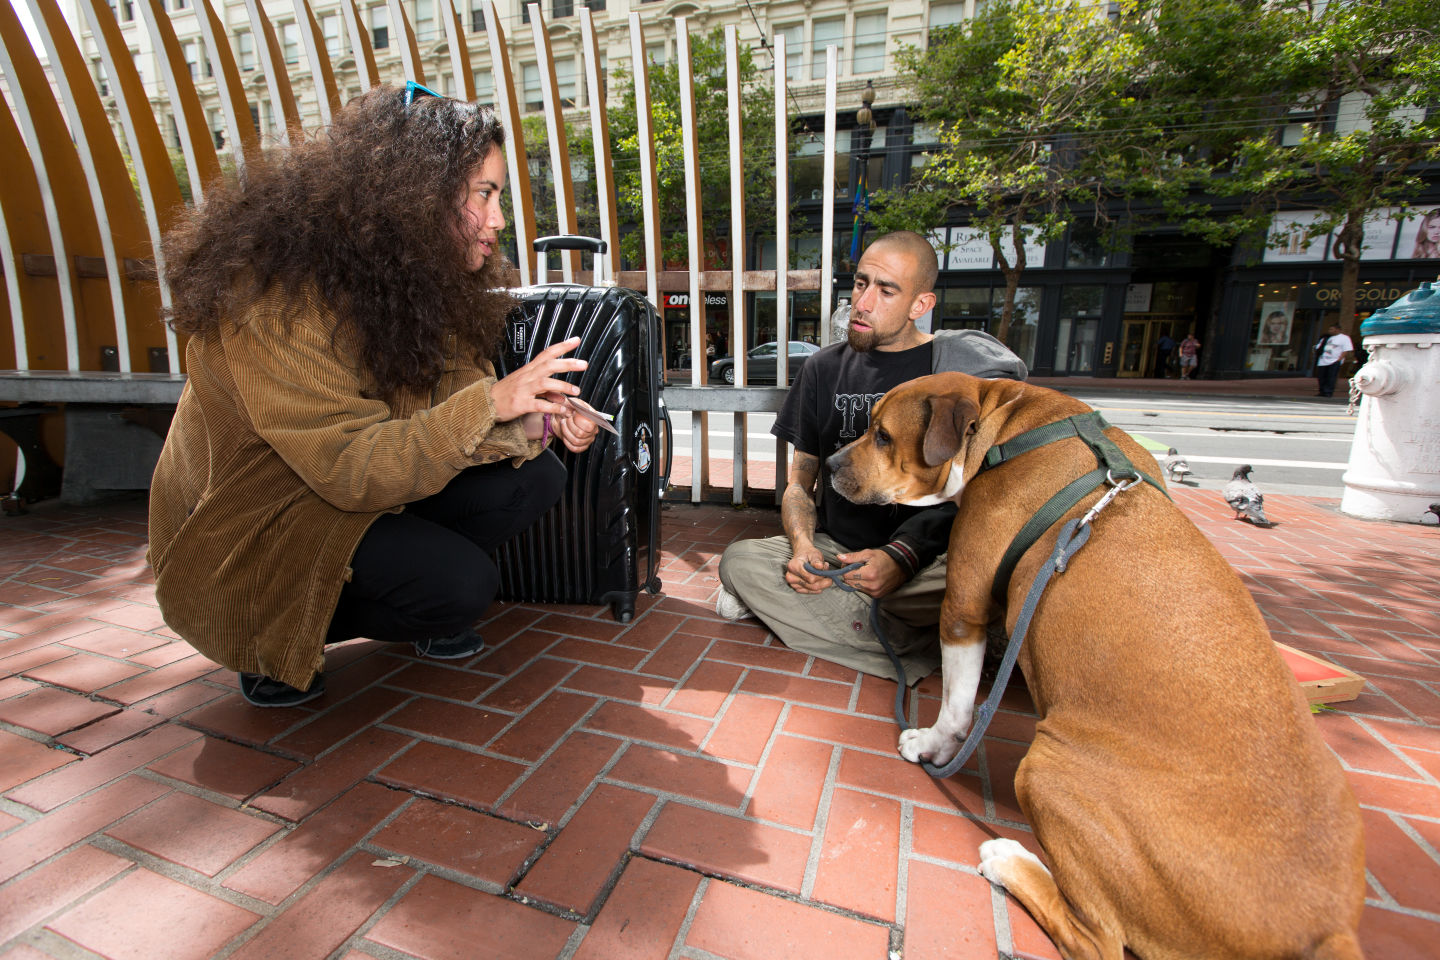 Marissa Balonon-Rosen of Project Homeless Connect and HandUp has been doing outreach and testing gift cards around Market Street in downtown San Francisco.